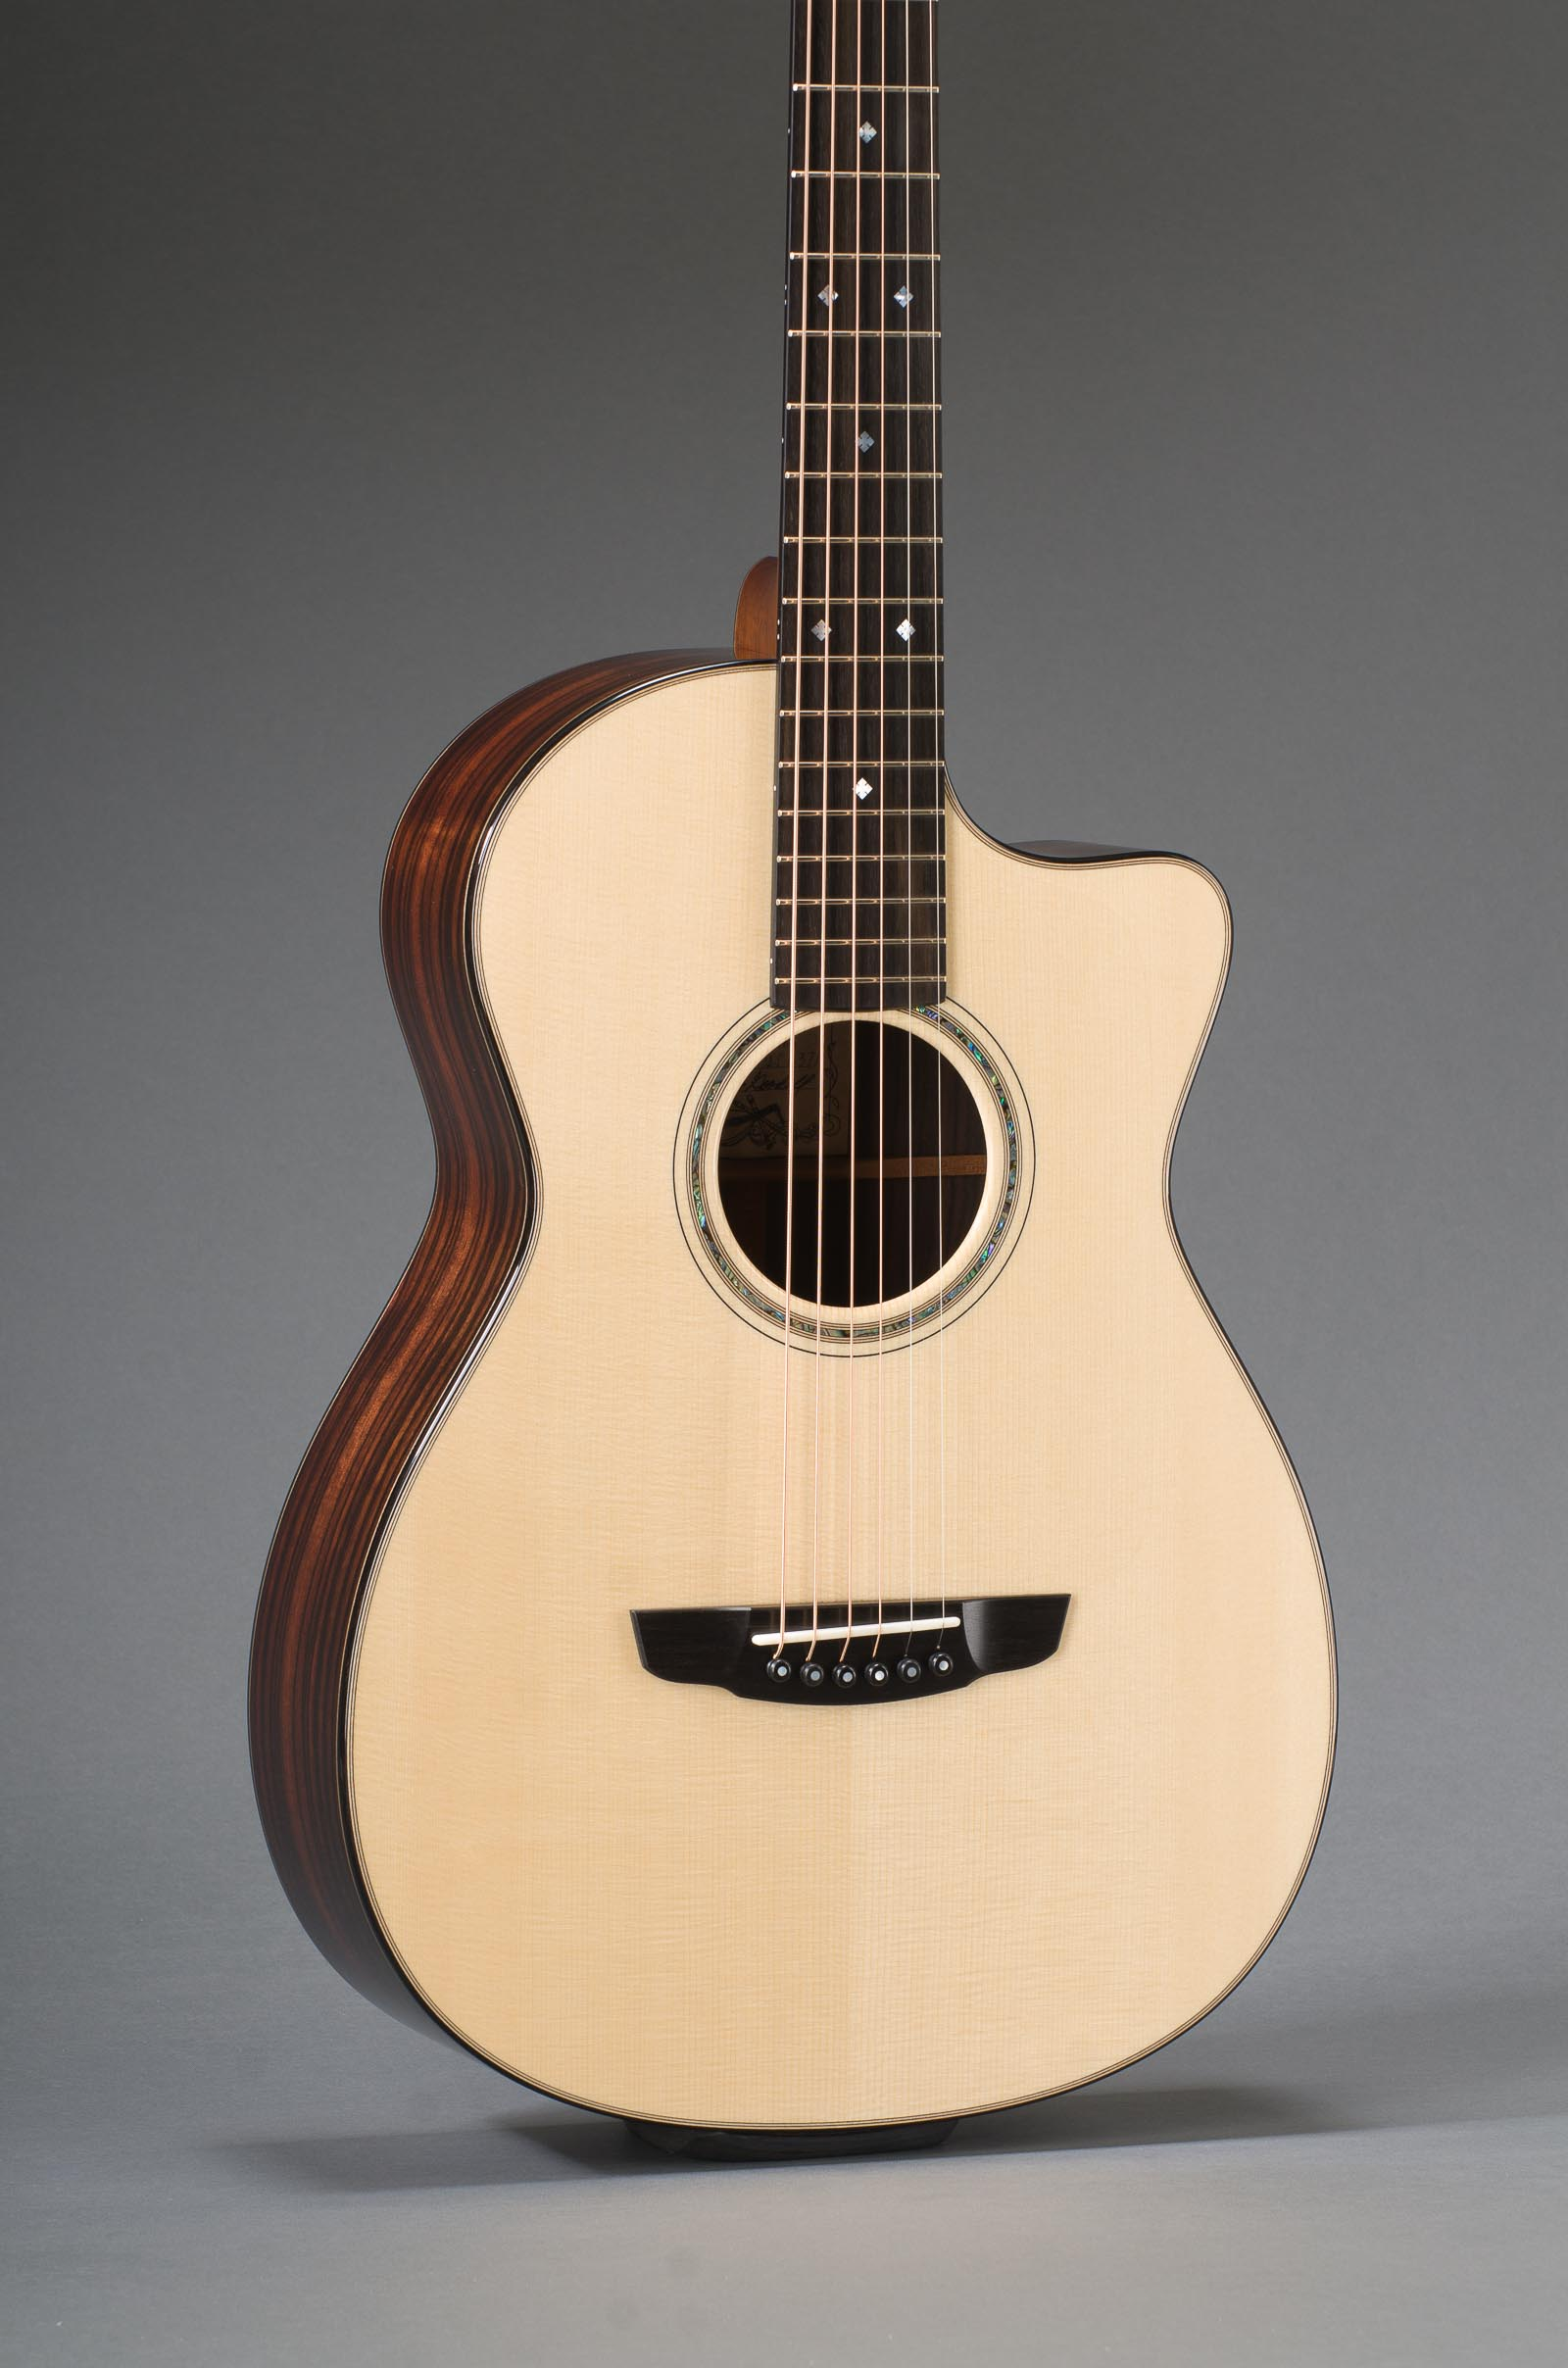 12-Fret Macassar Ebony Parlor Cutaway With Engelmann Spruce Top And Ebony Binding, Slotted Peghead Option, Paua Shell Rosette